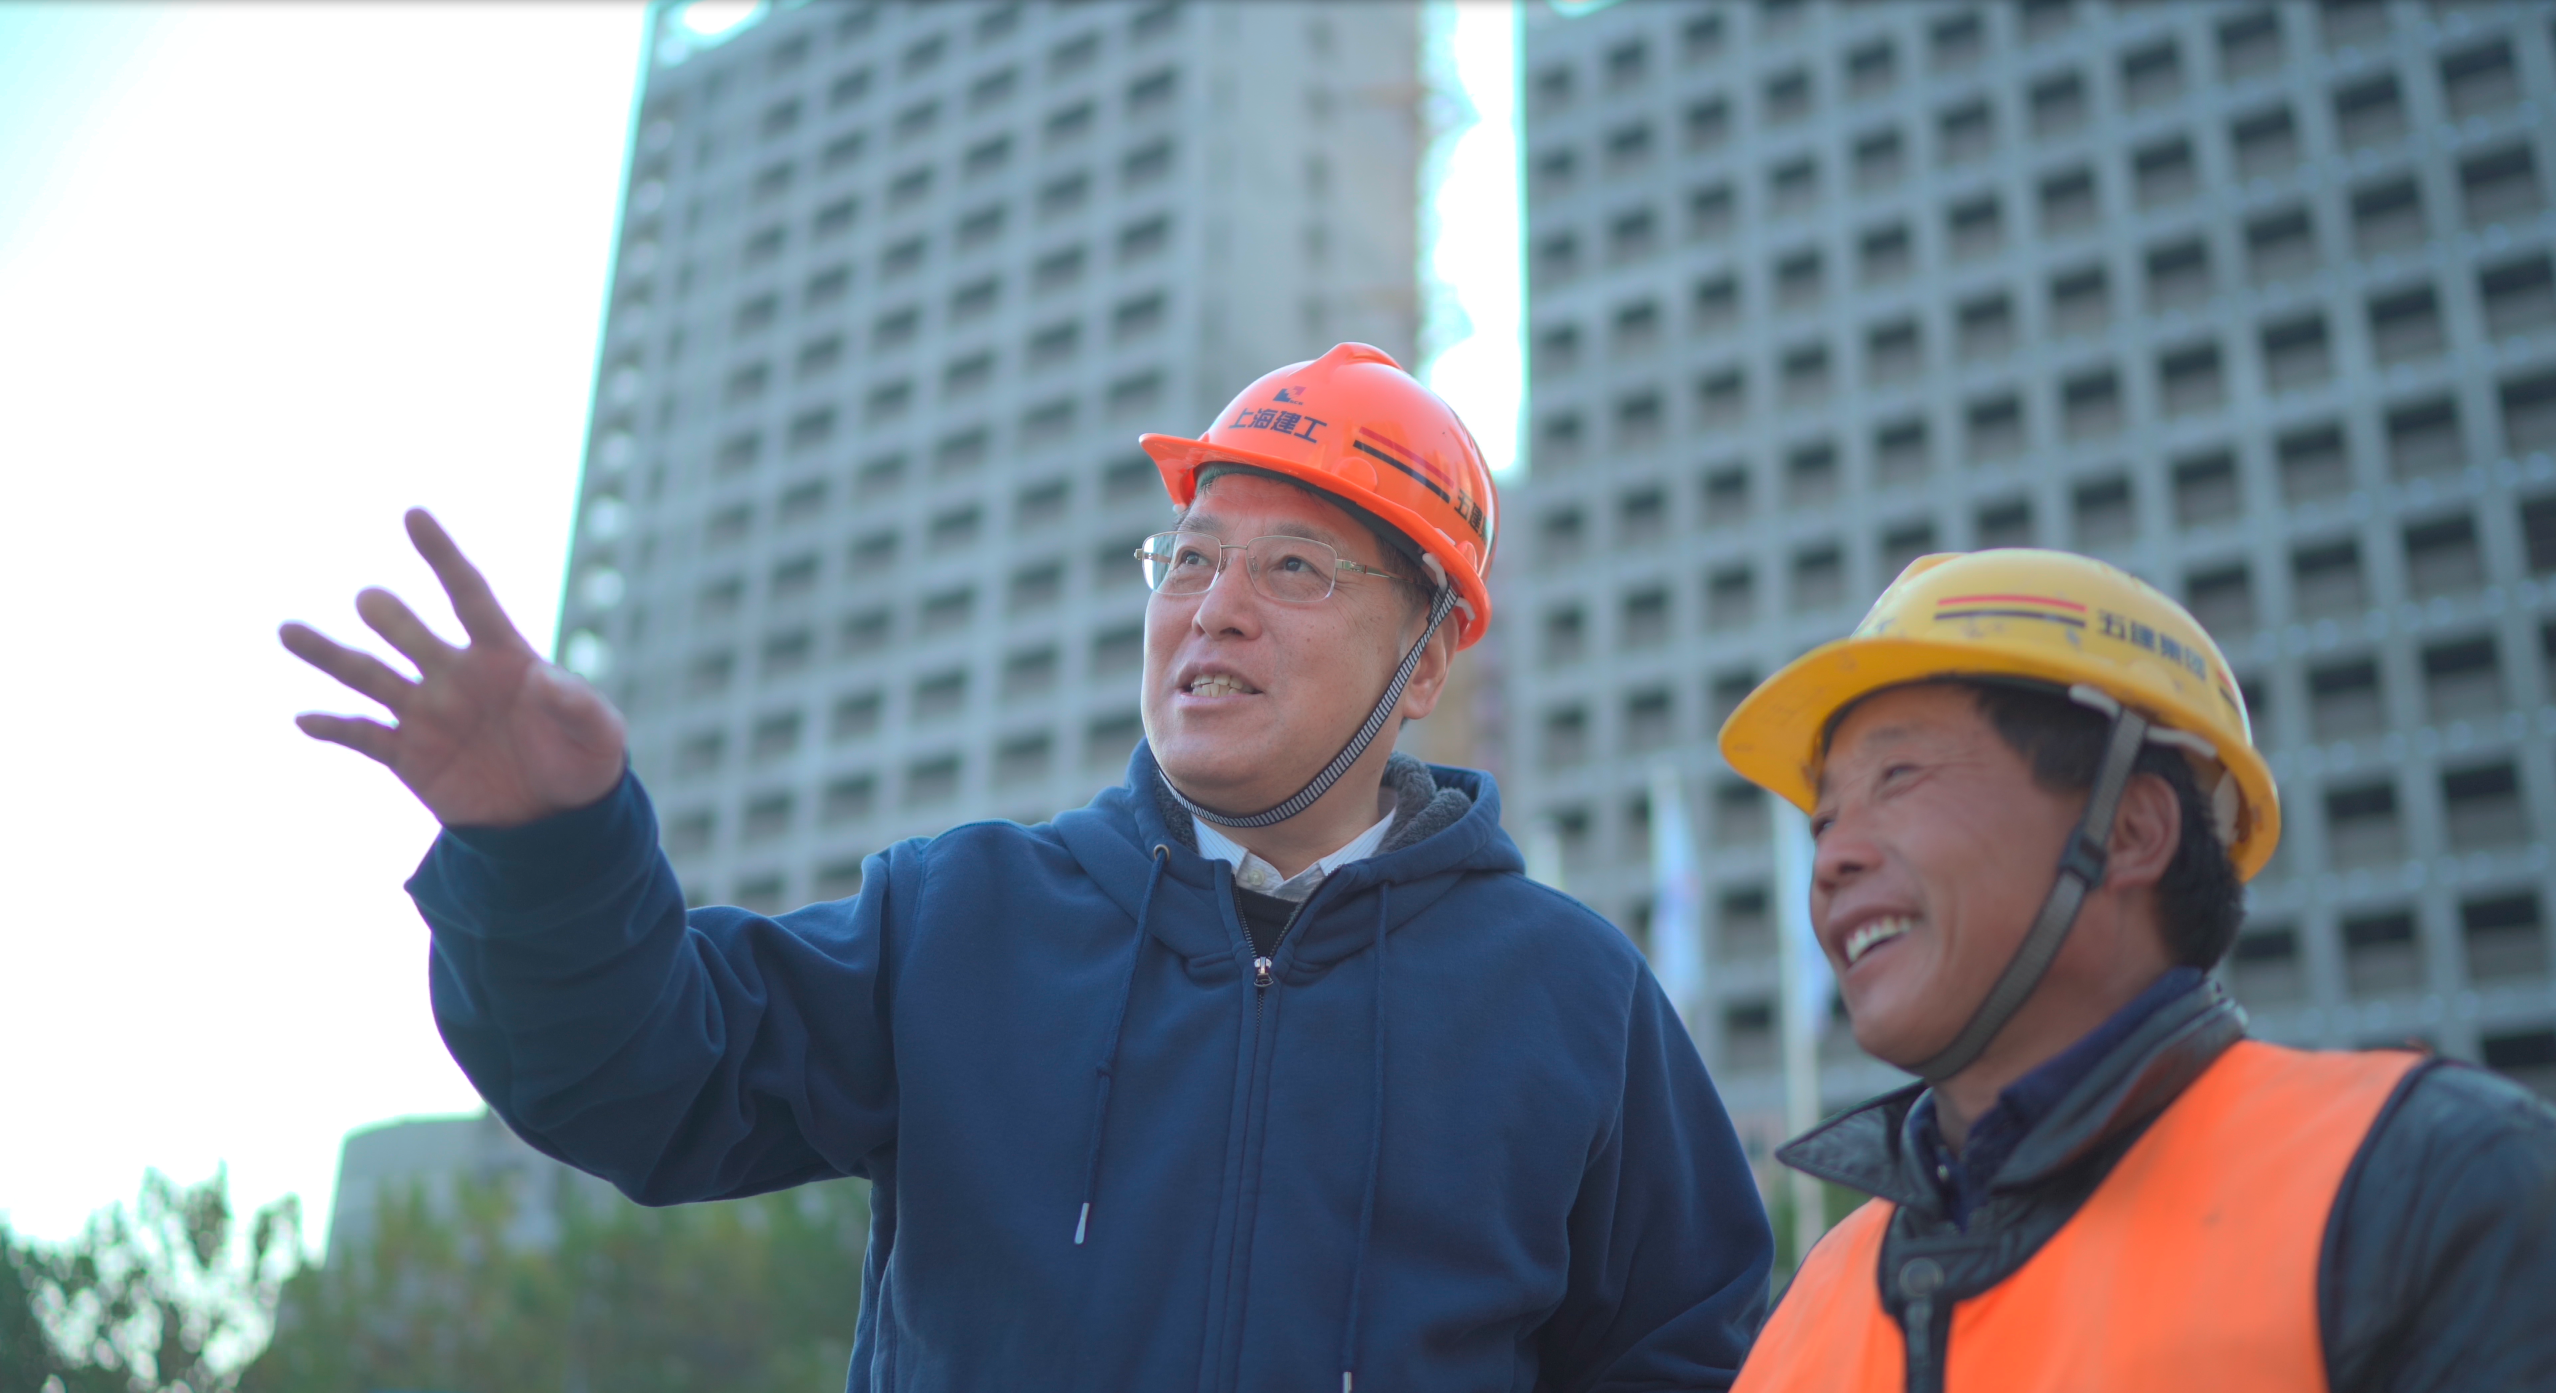 Yu, wearing hardhat, talks with construction worker at Qiantan campus building site